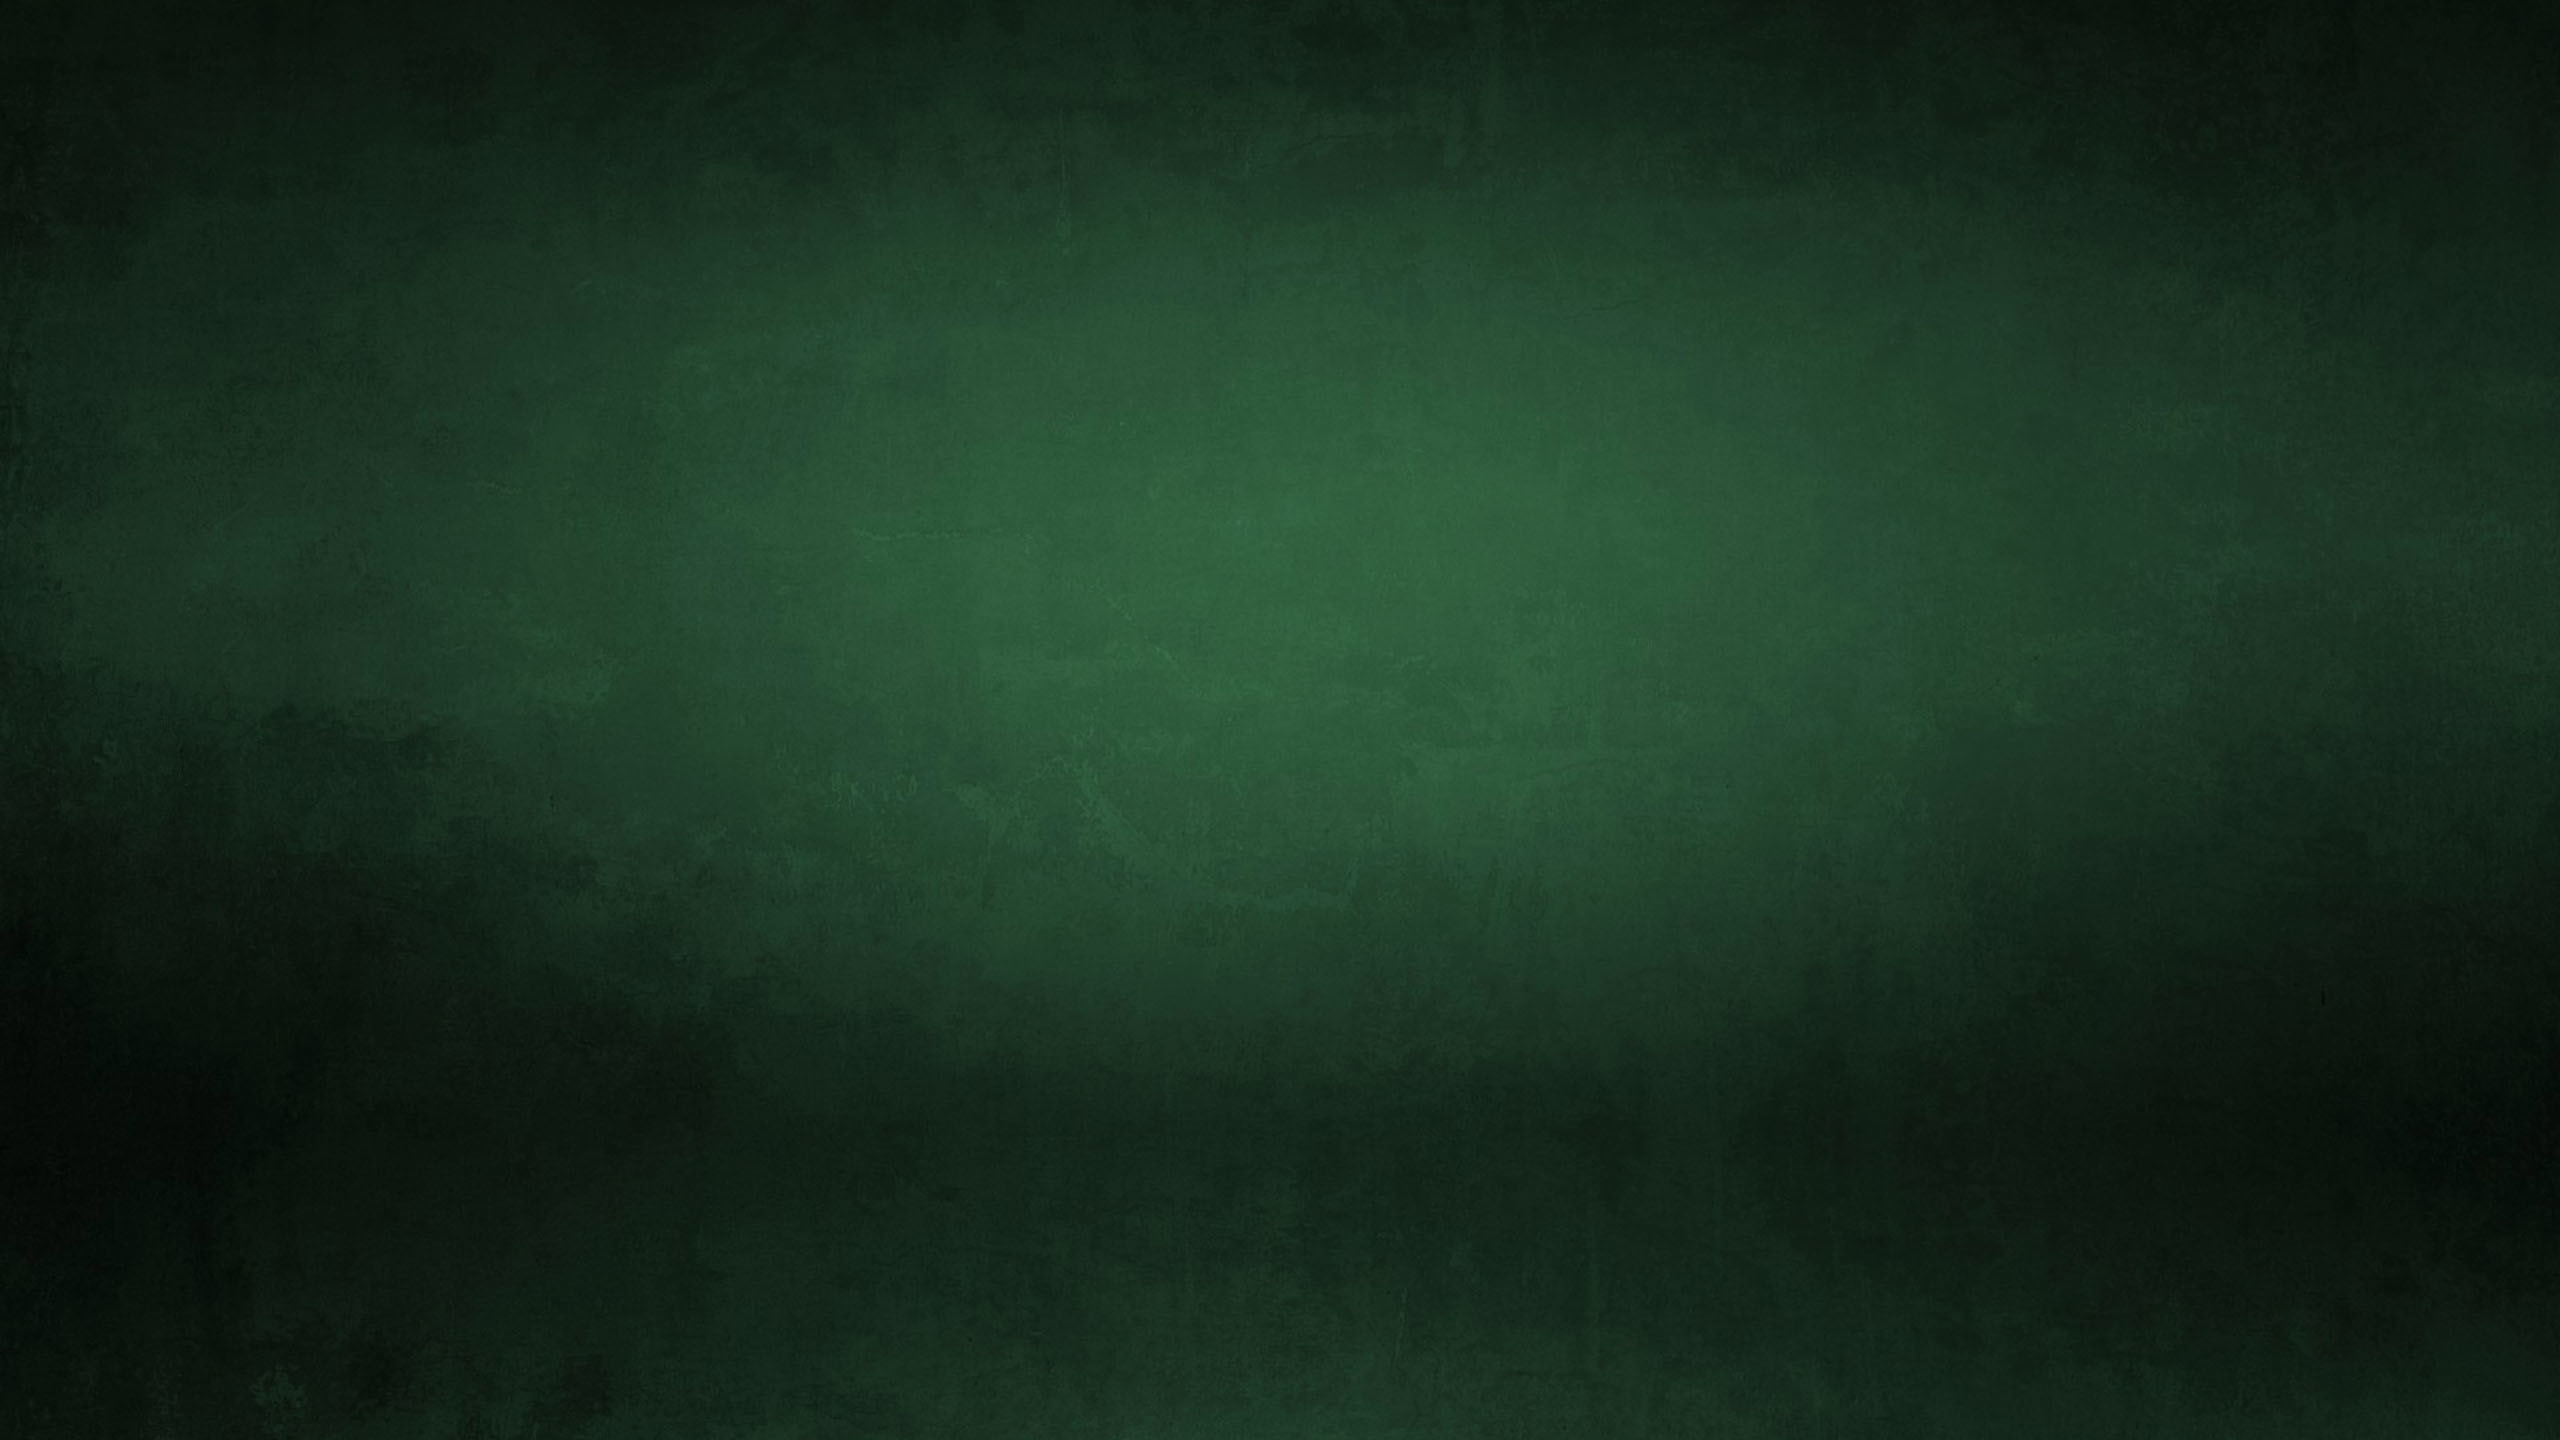 2560x1440 Dark Green Grunge Wallpaper Background 49803